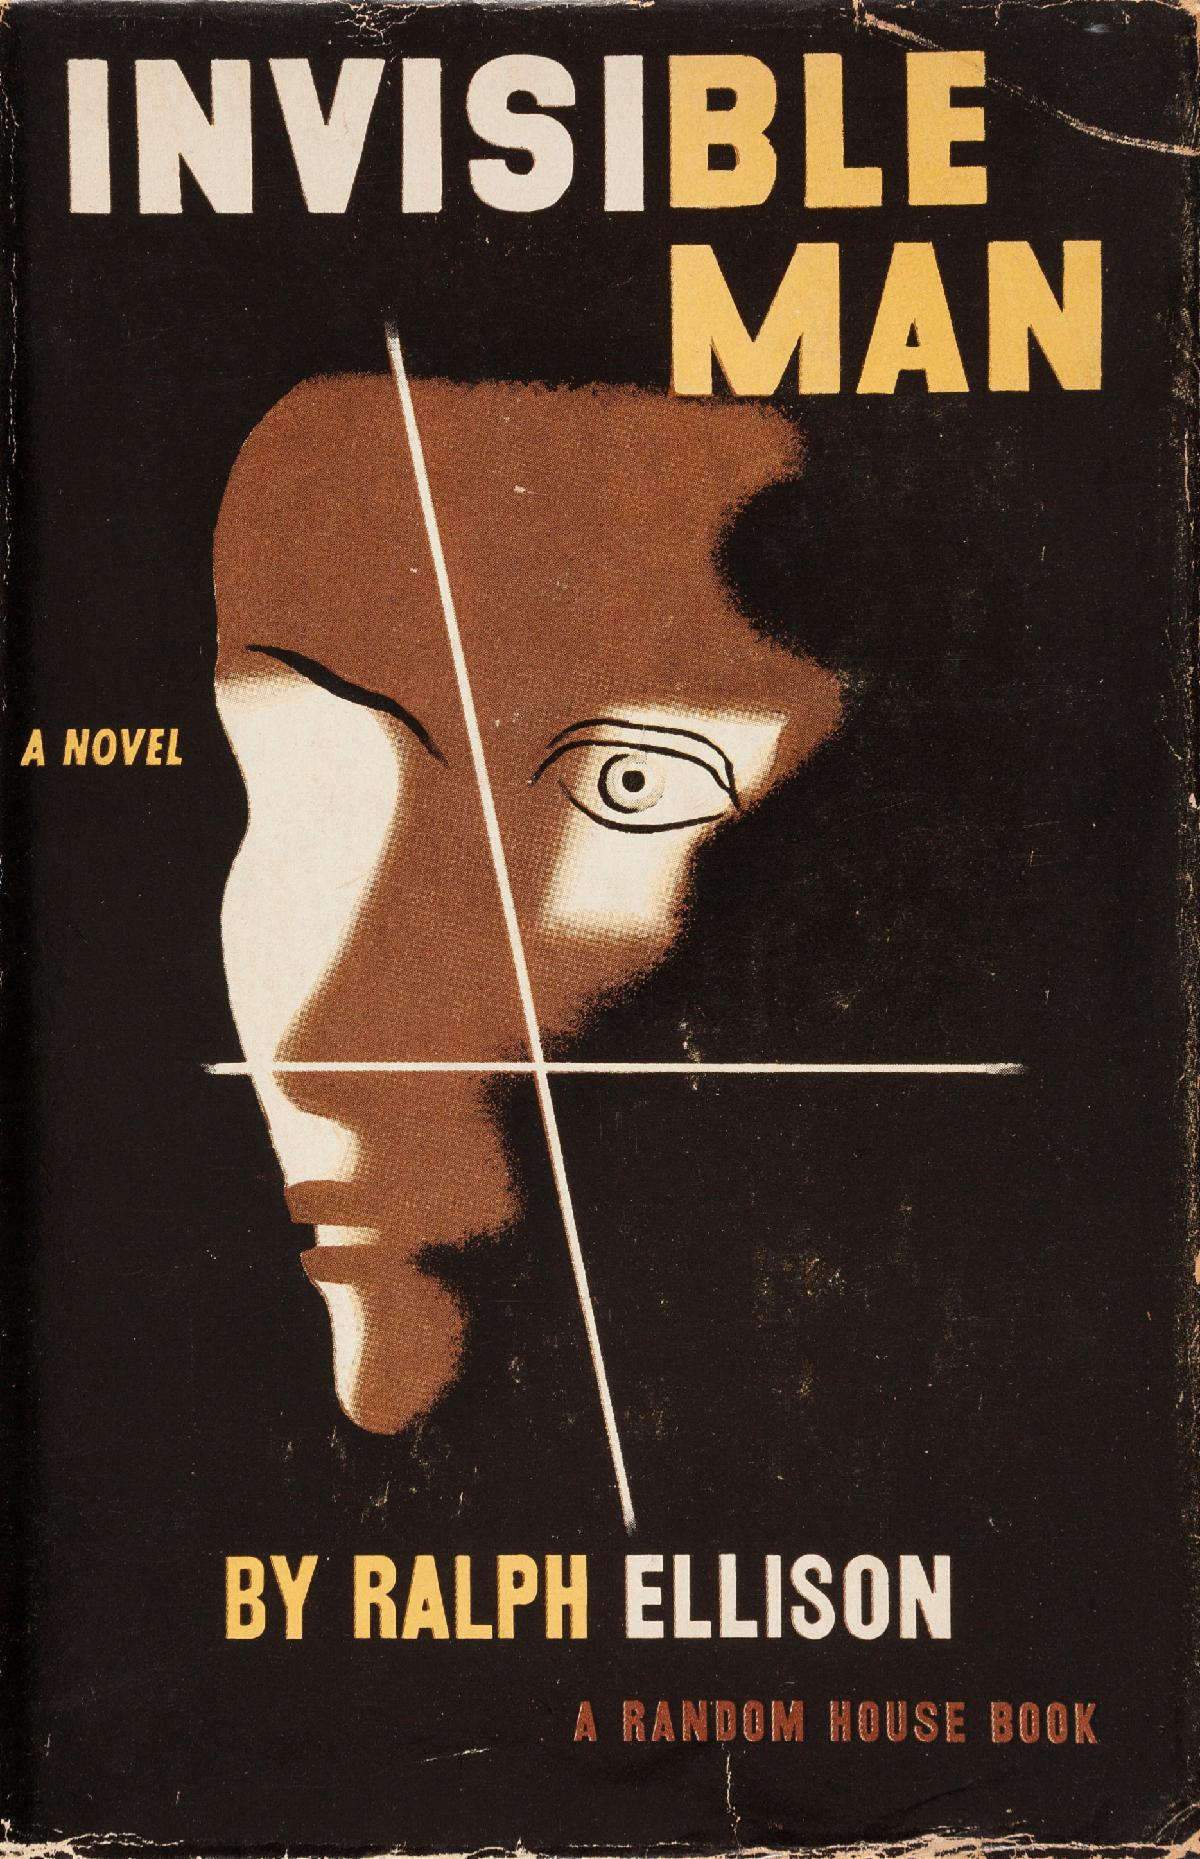 Invisible_Man__1952_1st_ed_jacket_cover_.jpg